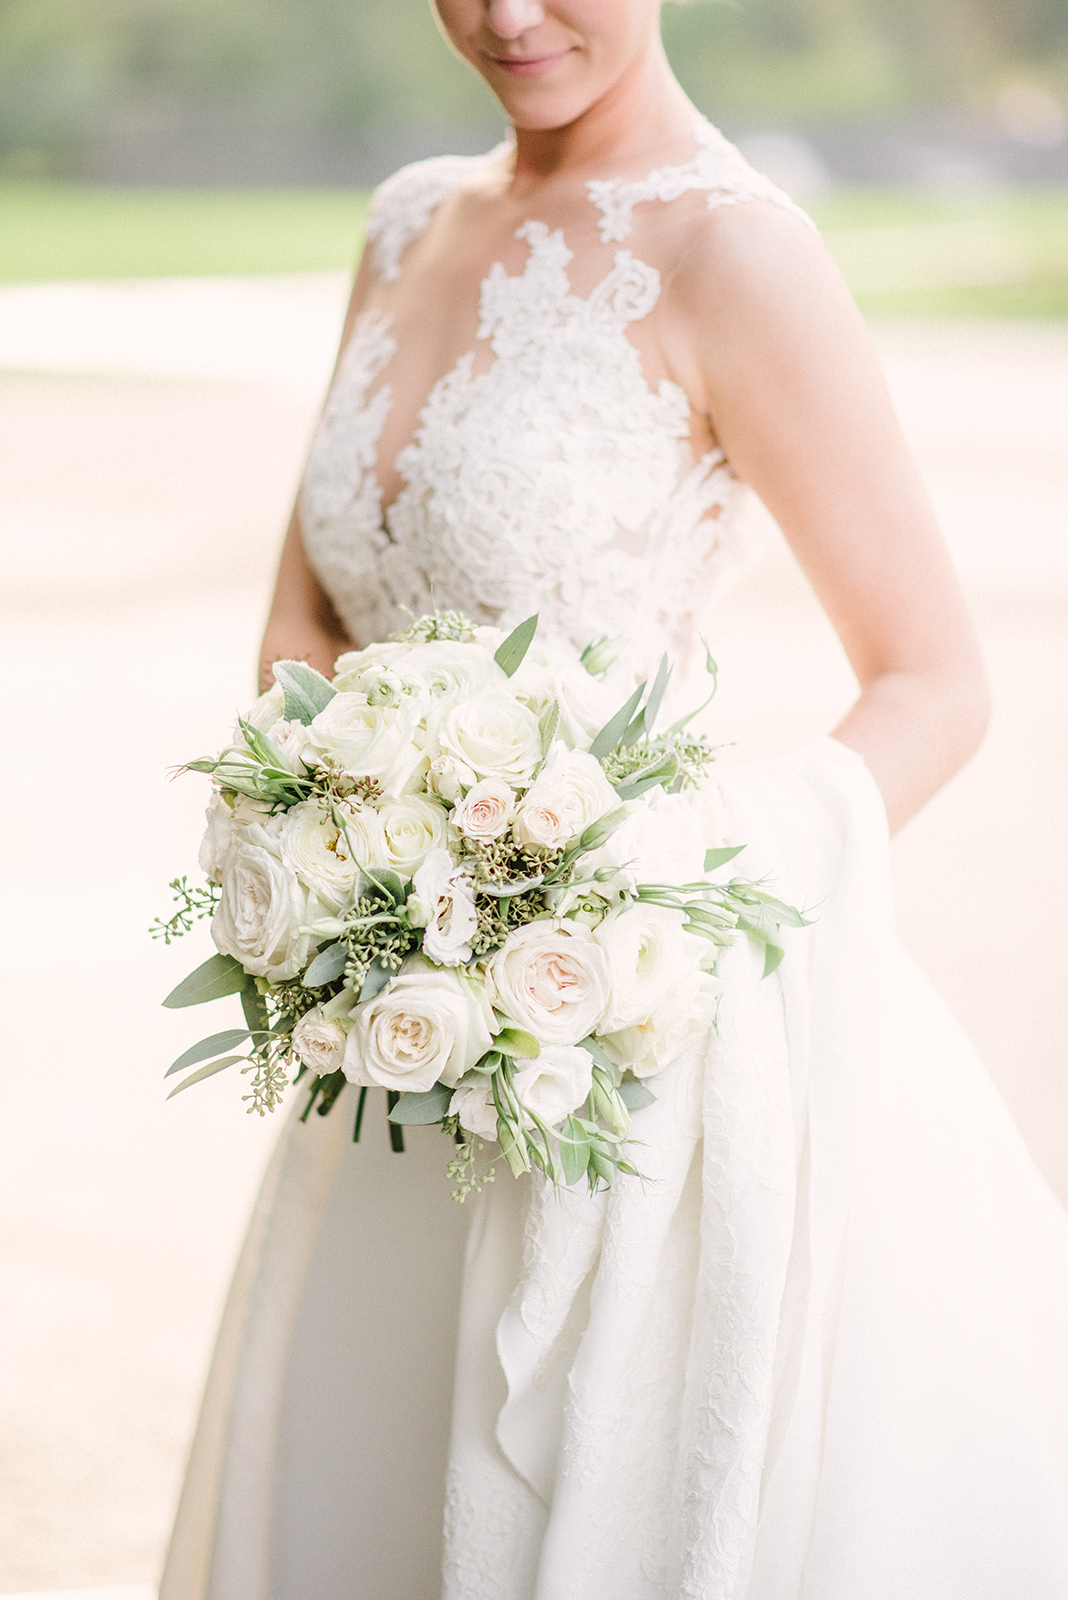 A timeless whit wedding bouquet